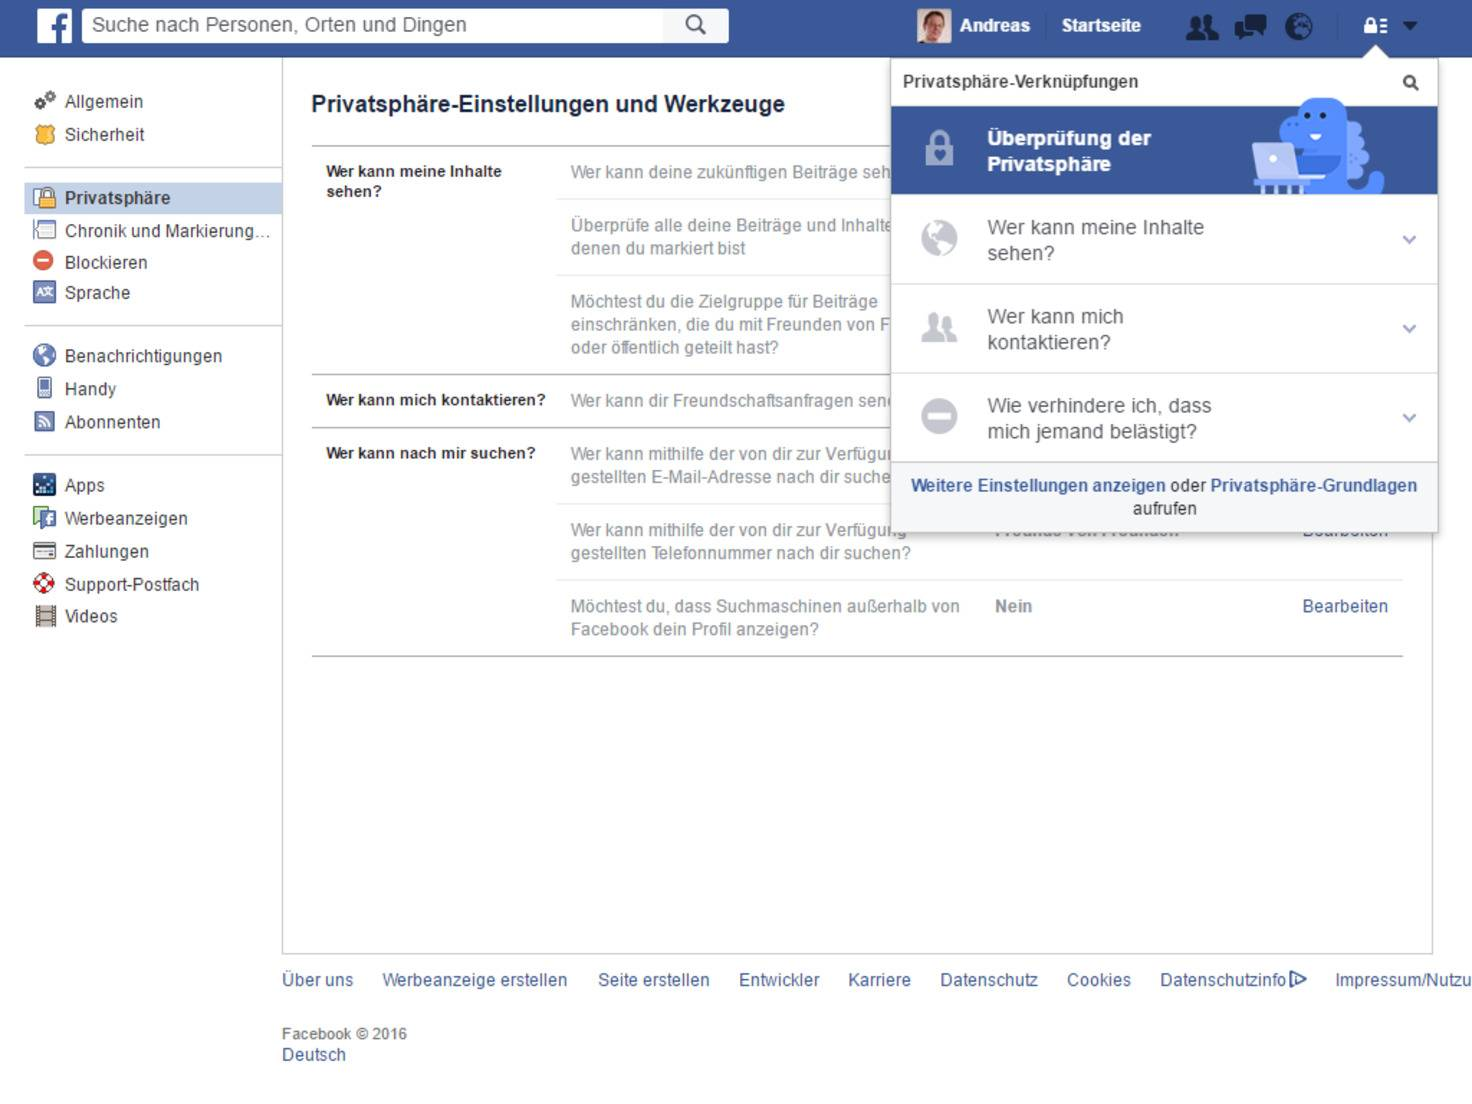 Andreas_Facebook_Sicherheit